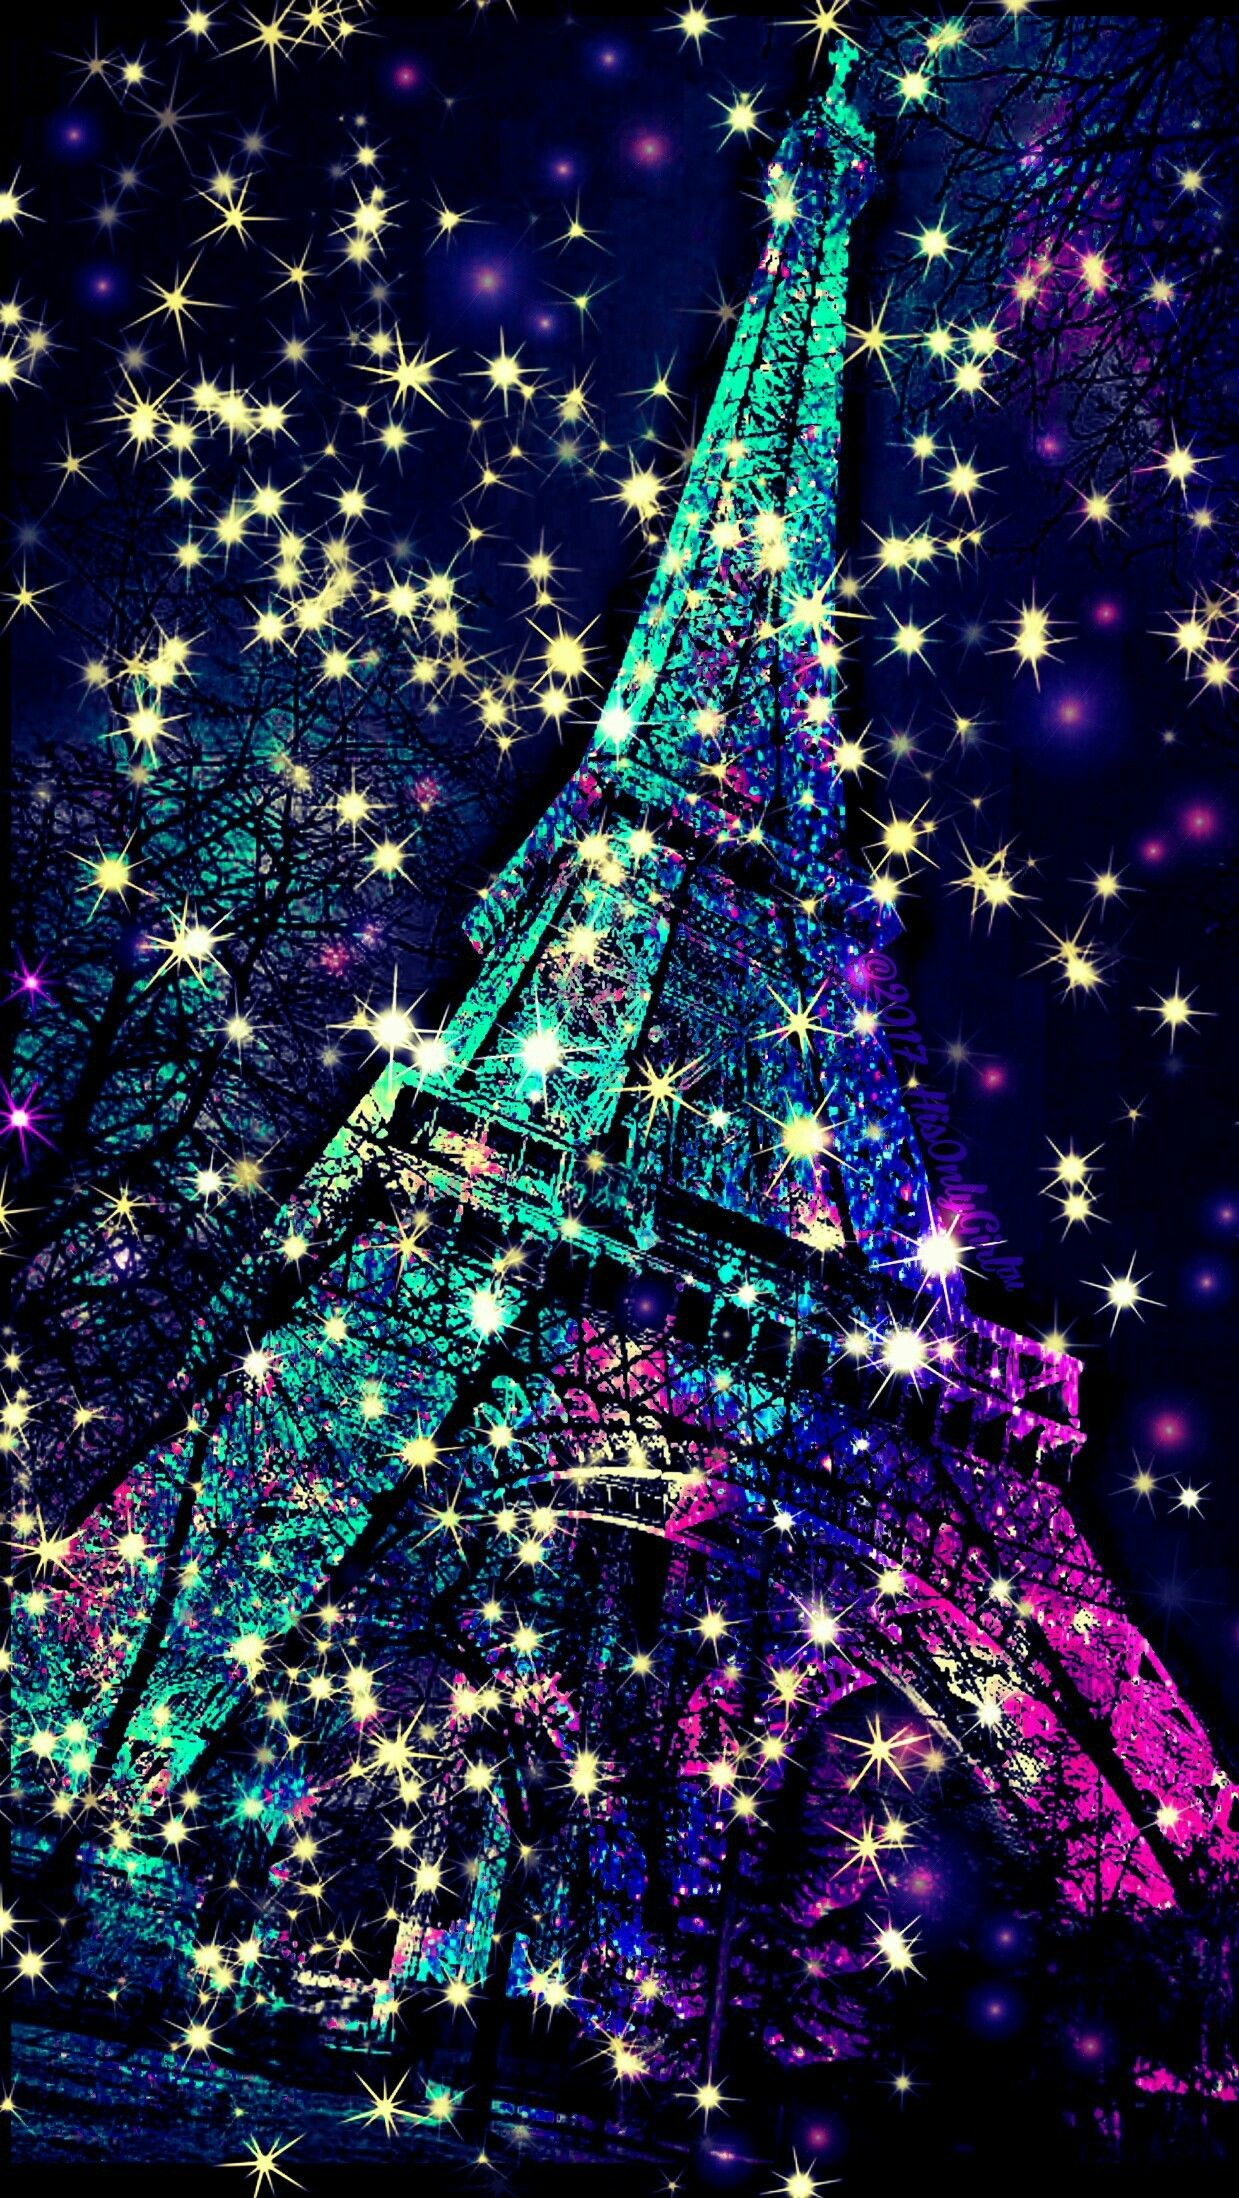 Res: 1239x2198, Eiffel Tower sparkle galaxy wallpaper I created for the app CocoPPa!